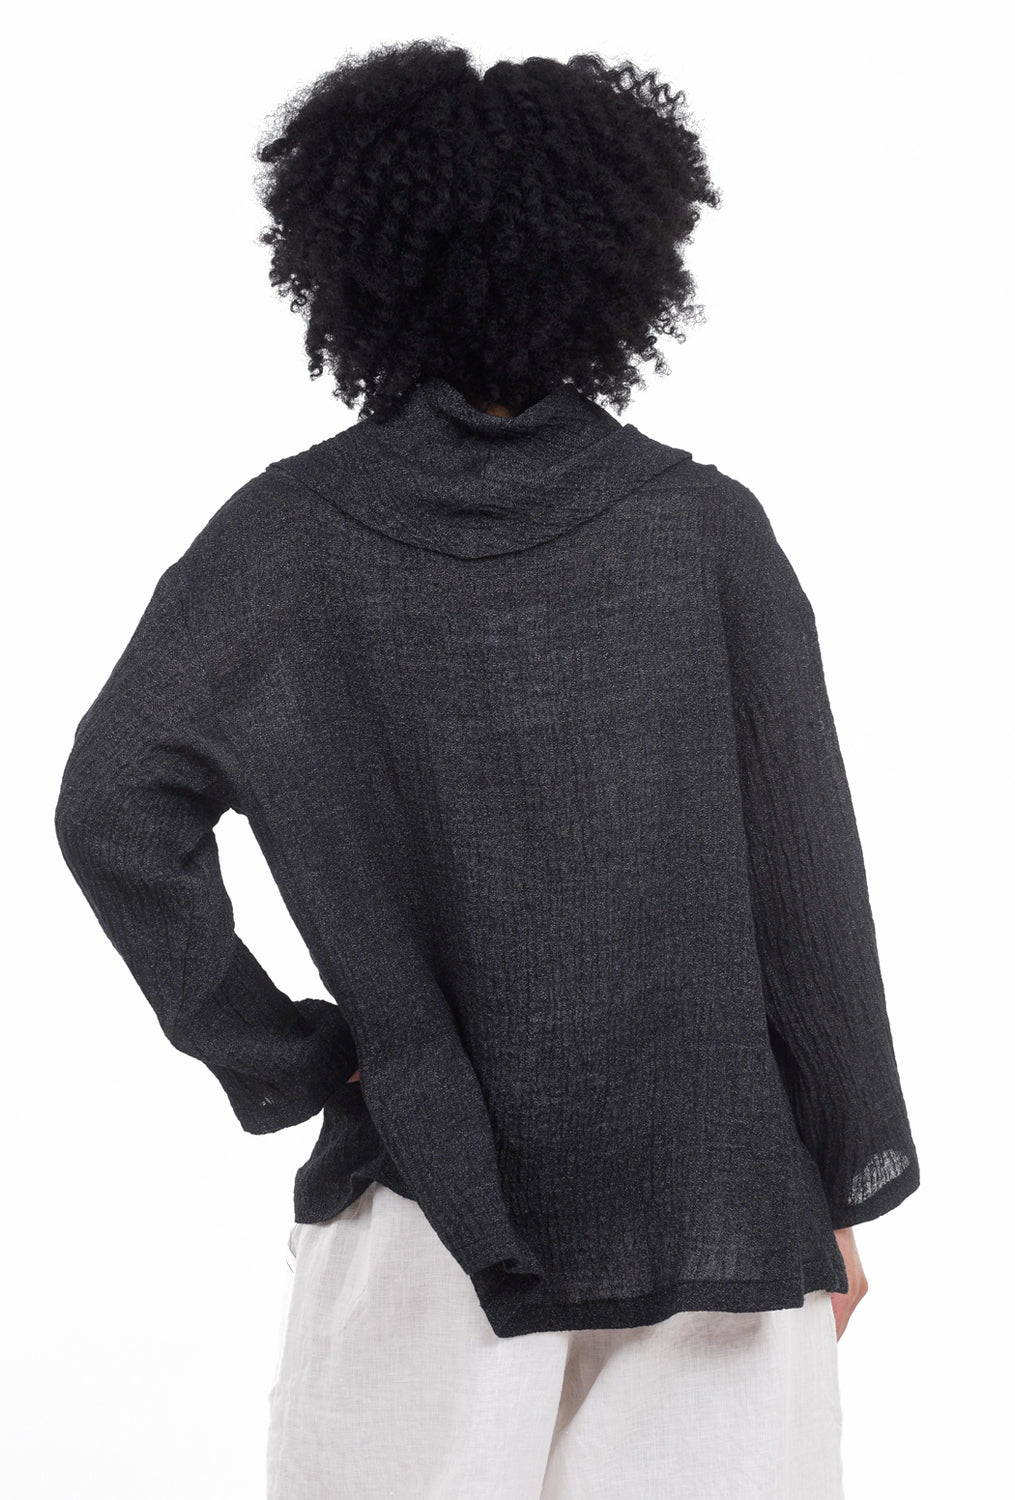 M Square Linen Crop Cowl Top, Night One Size